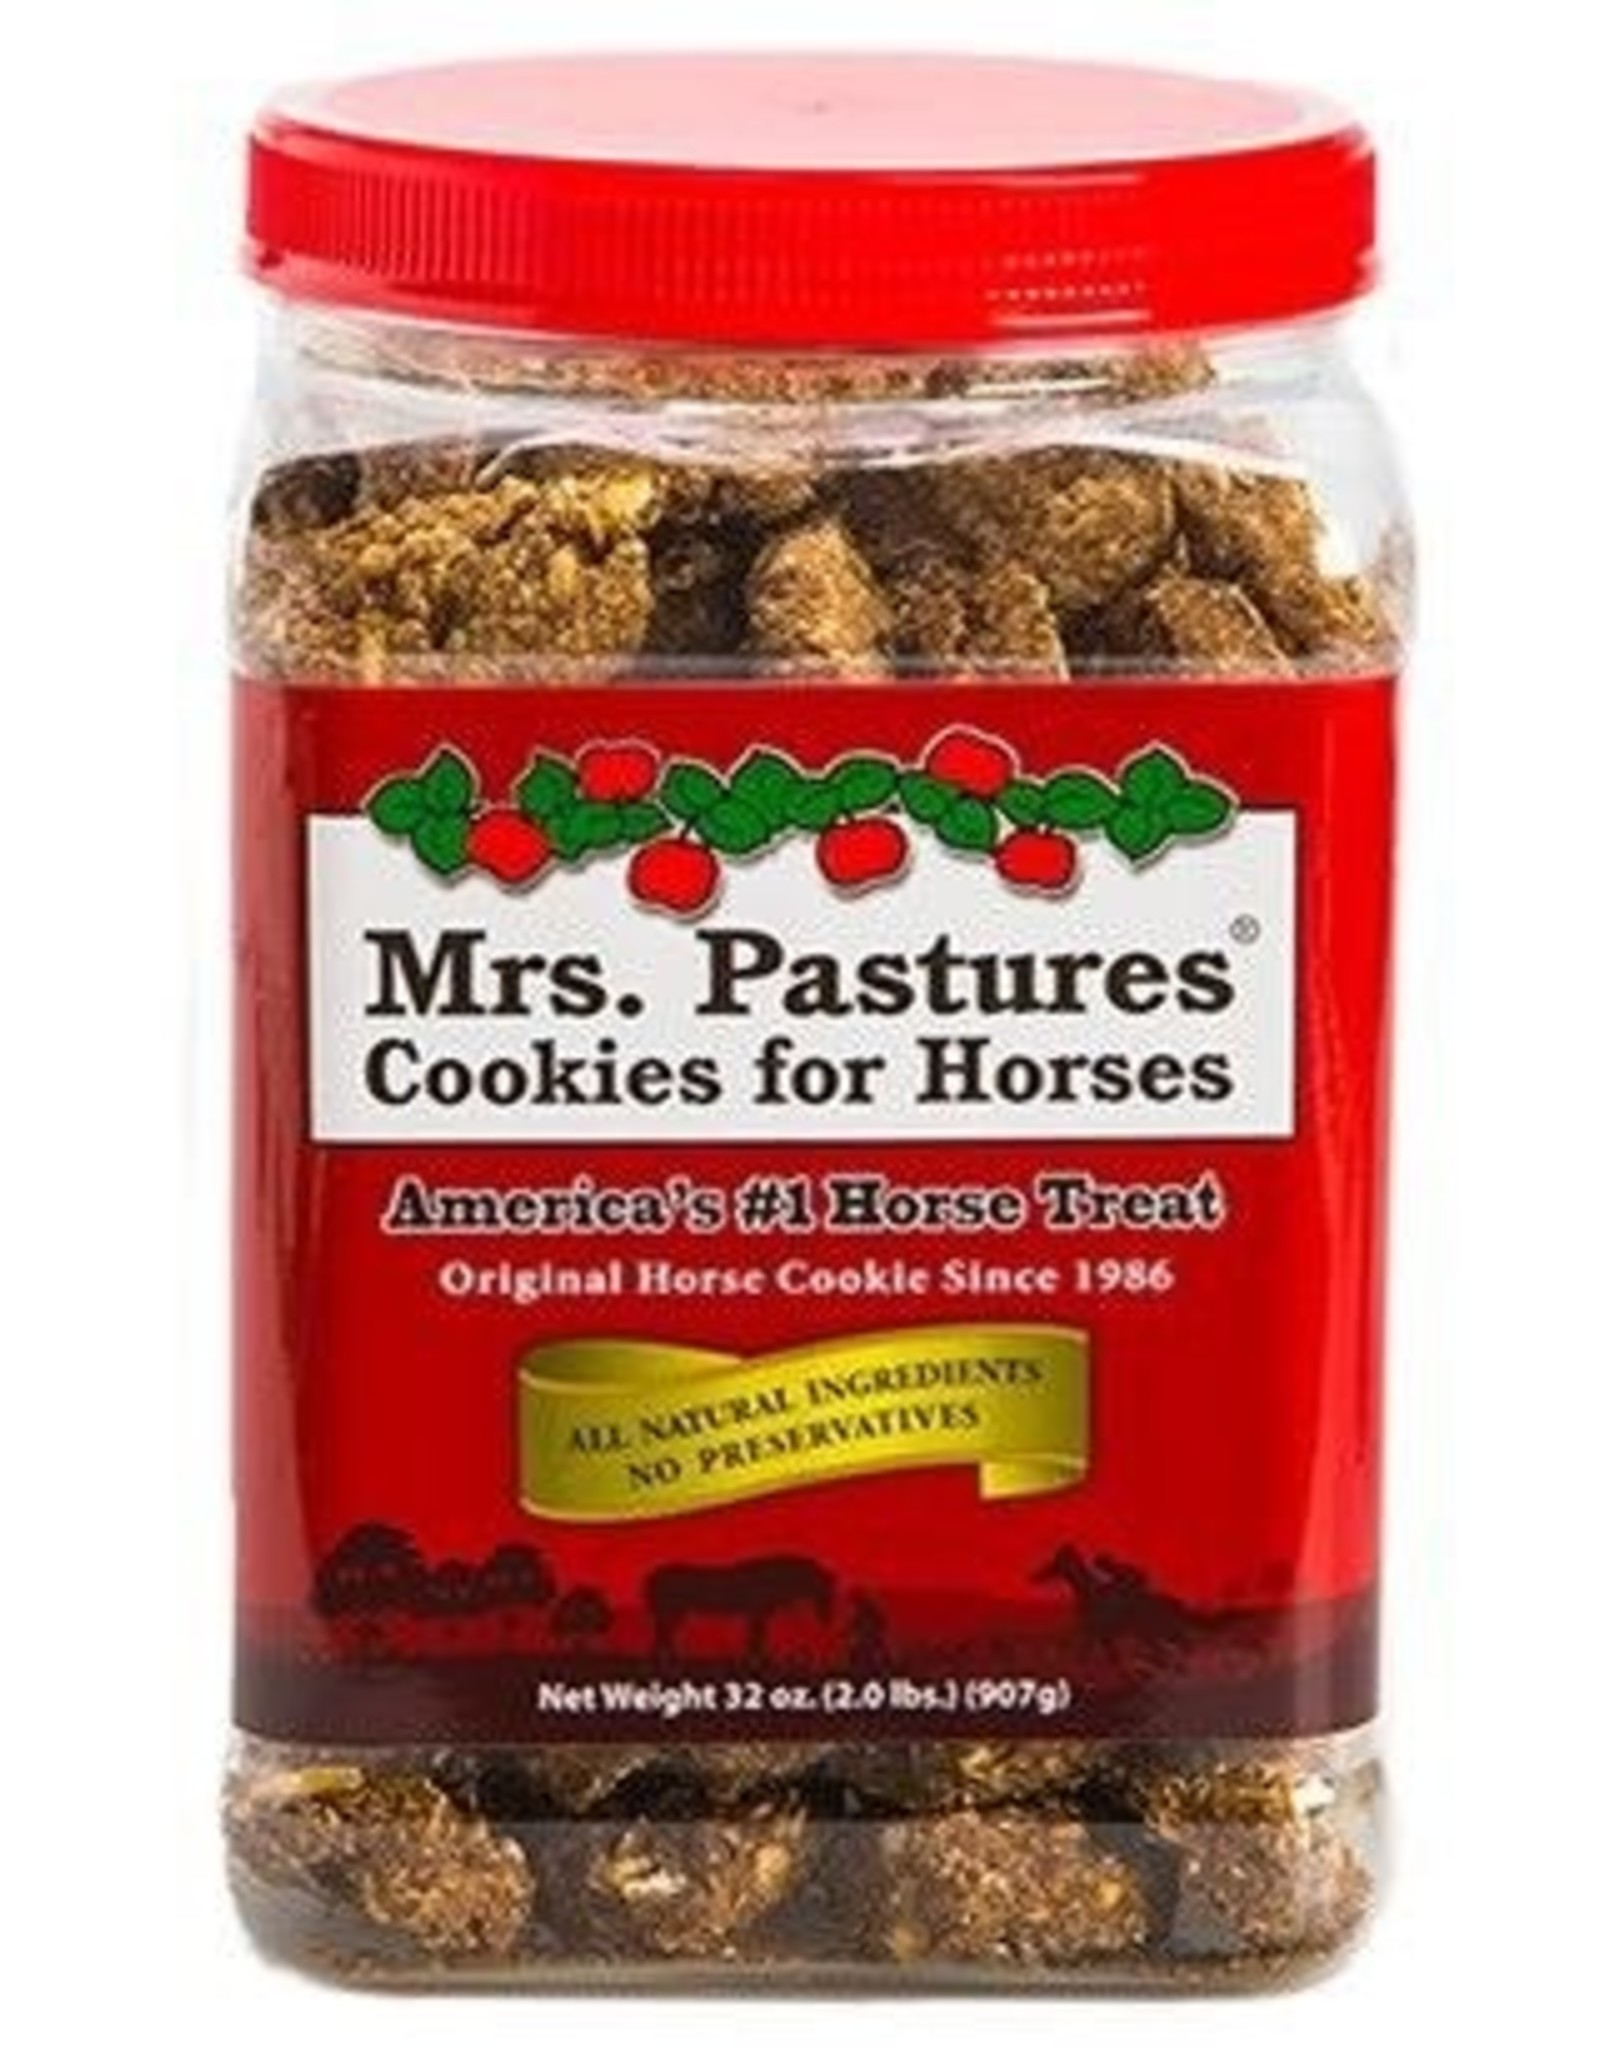 Mrs. Pastures Mrs. Pastures Cookies for Horses - 32oz Reusable Jar